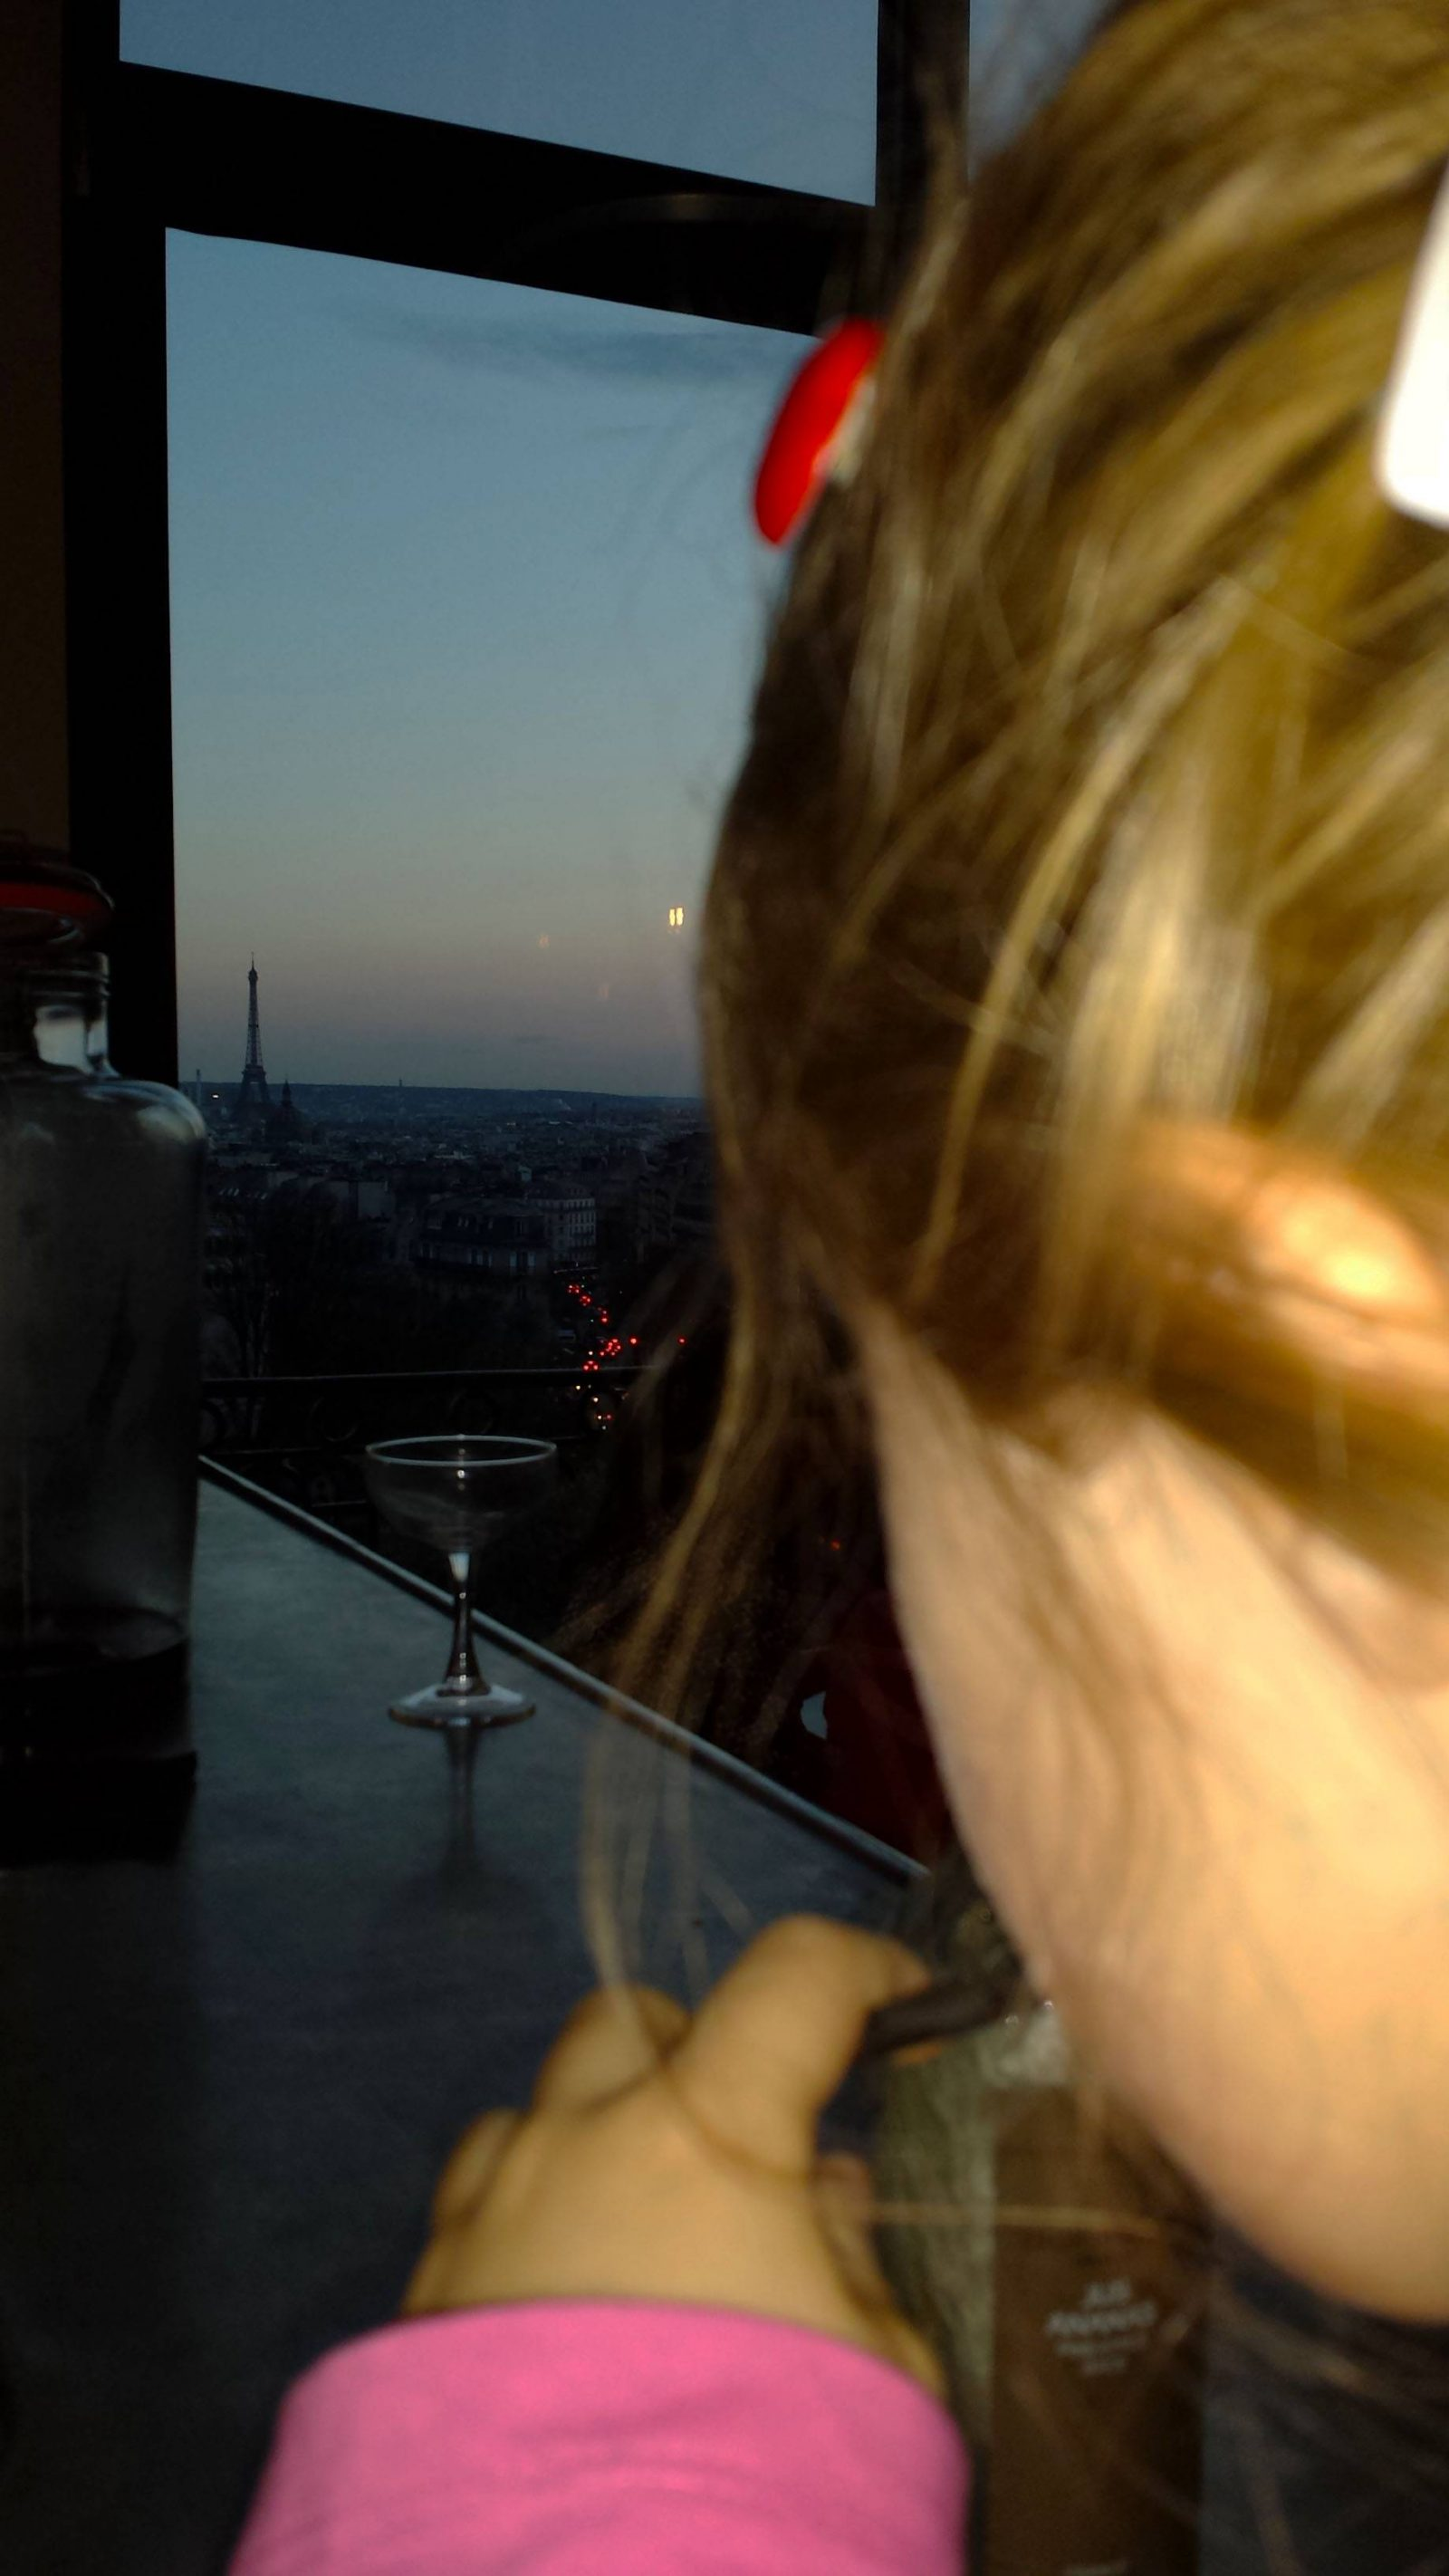 Last Night in Paris at the Terrasse Hotel Montmartre bar view Eiffel Tower